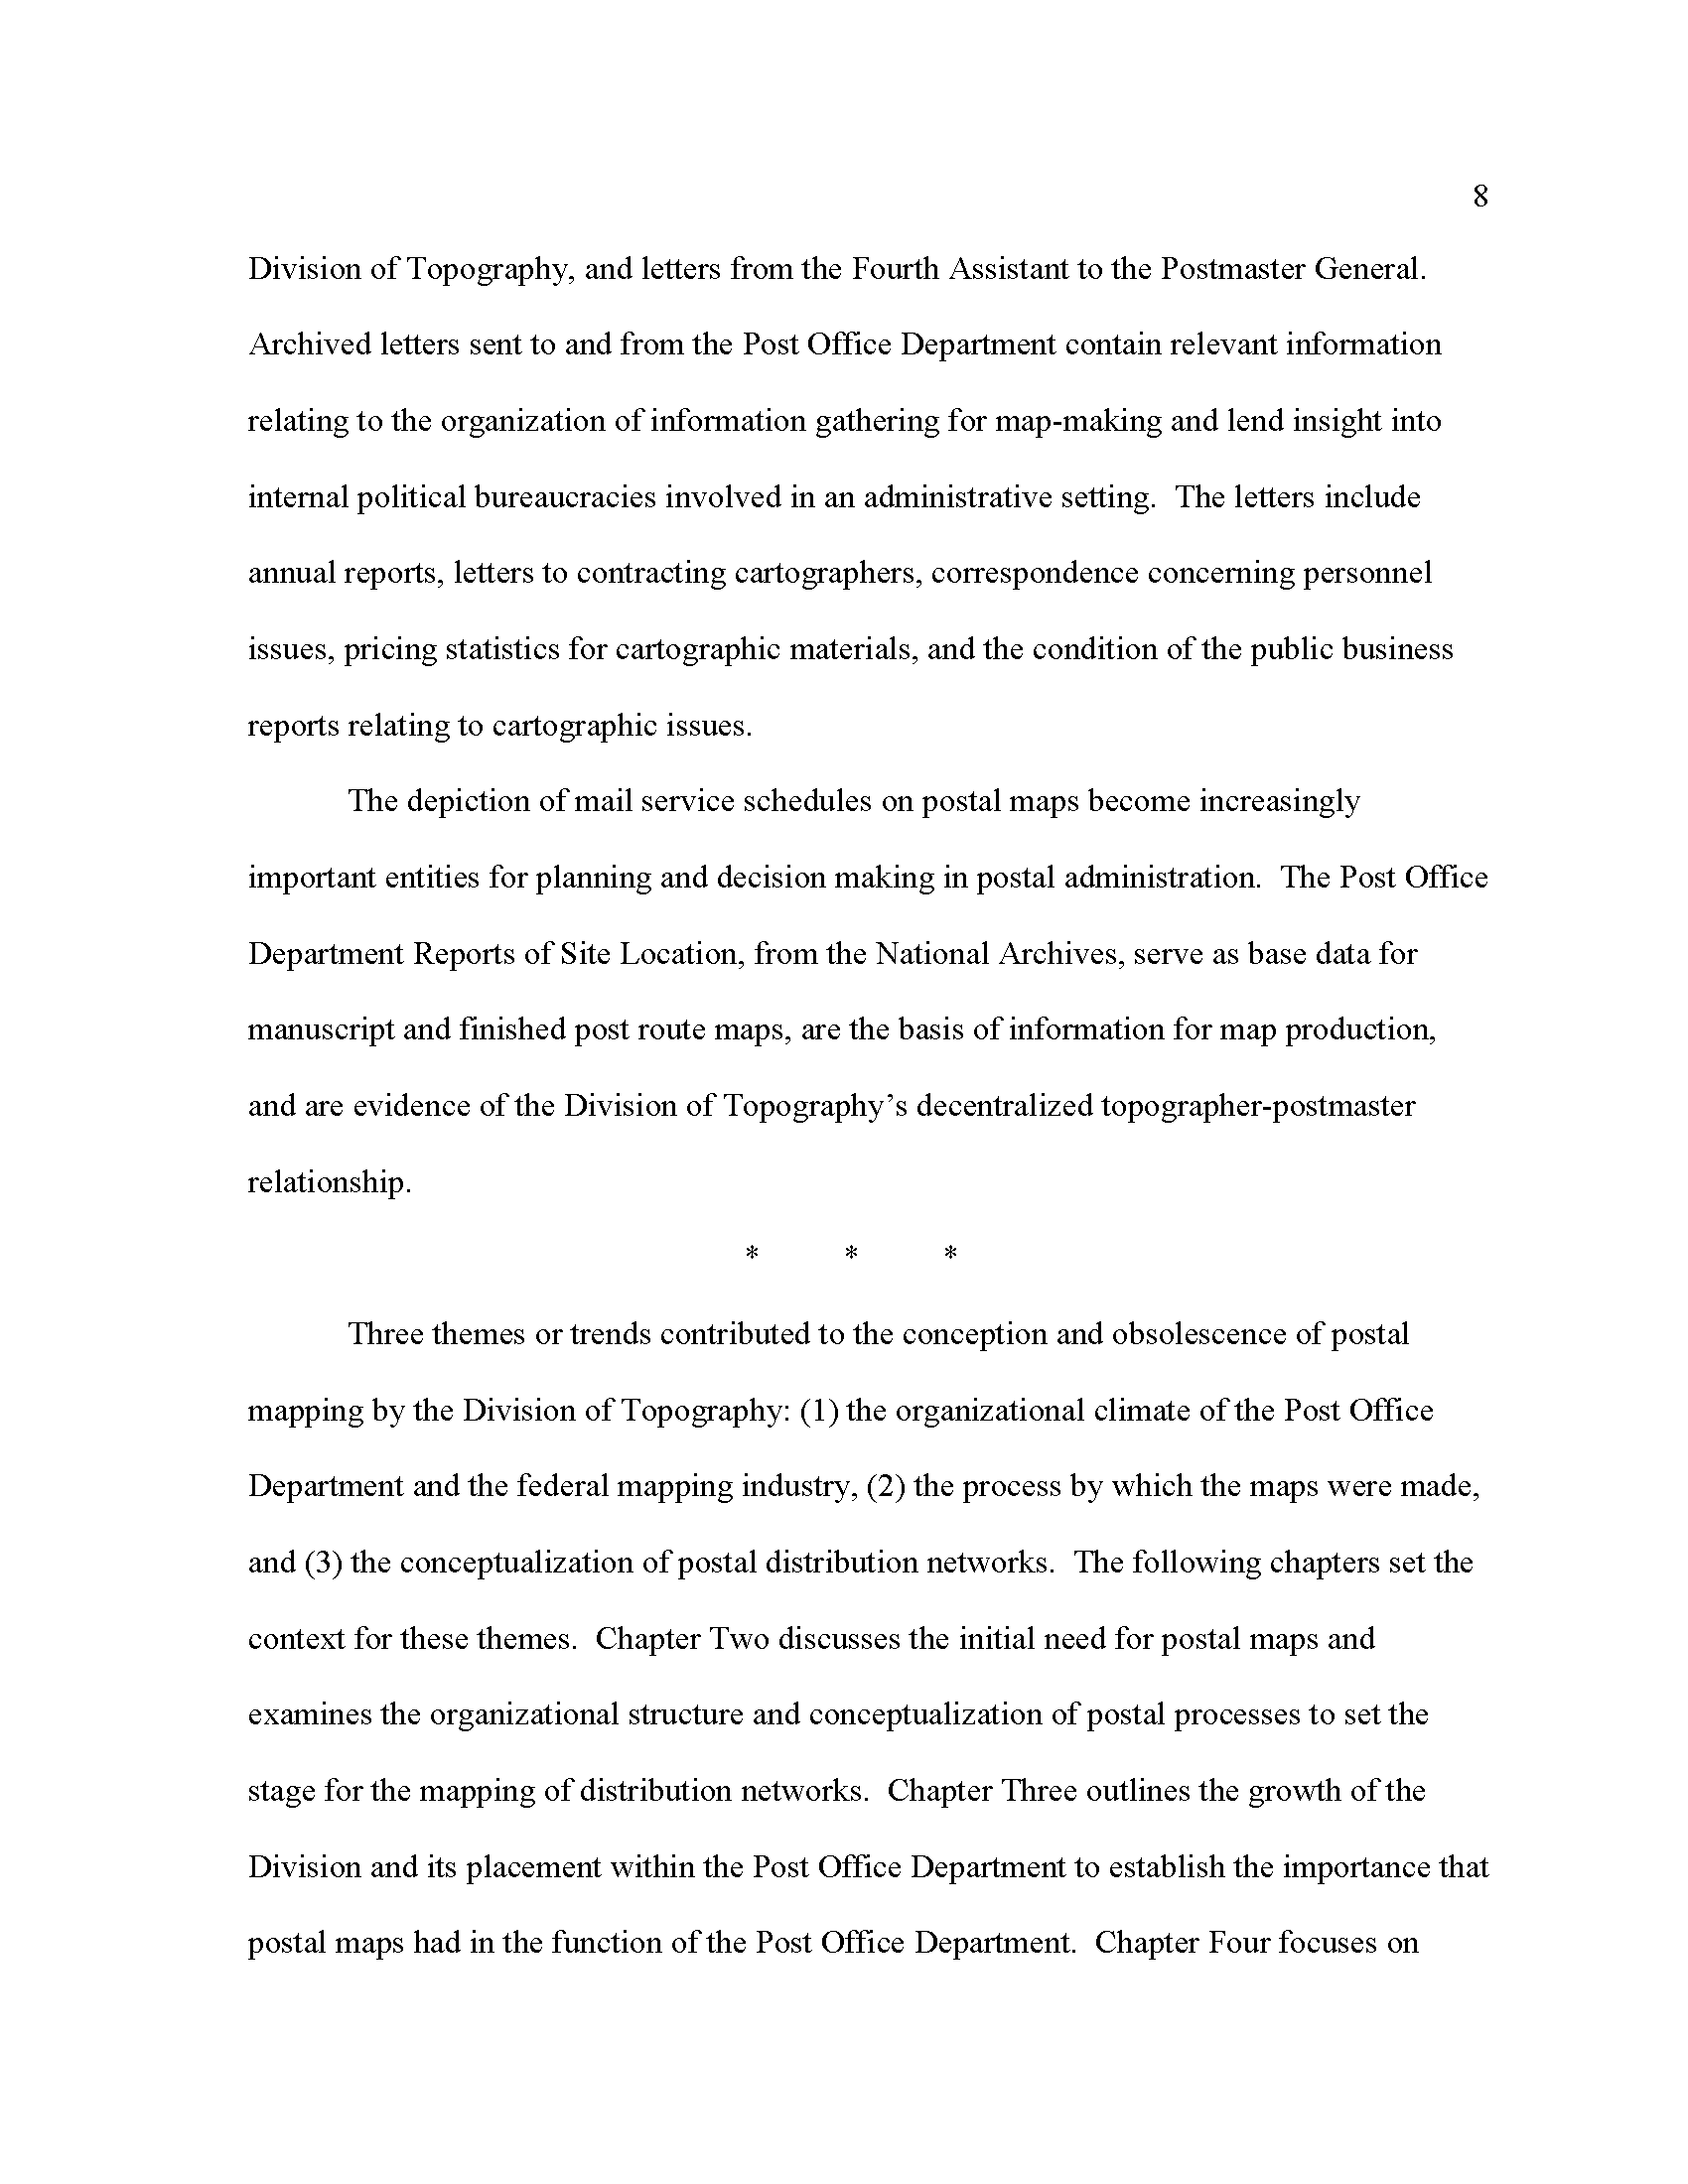 Thesis Final_Page_012.png